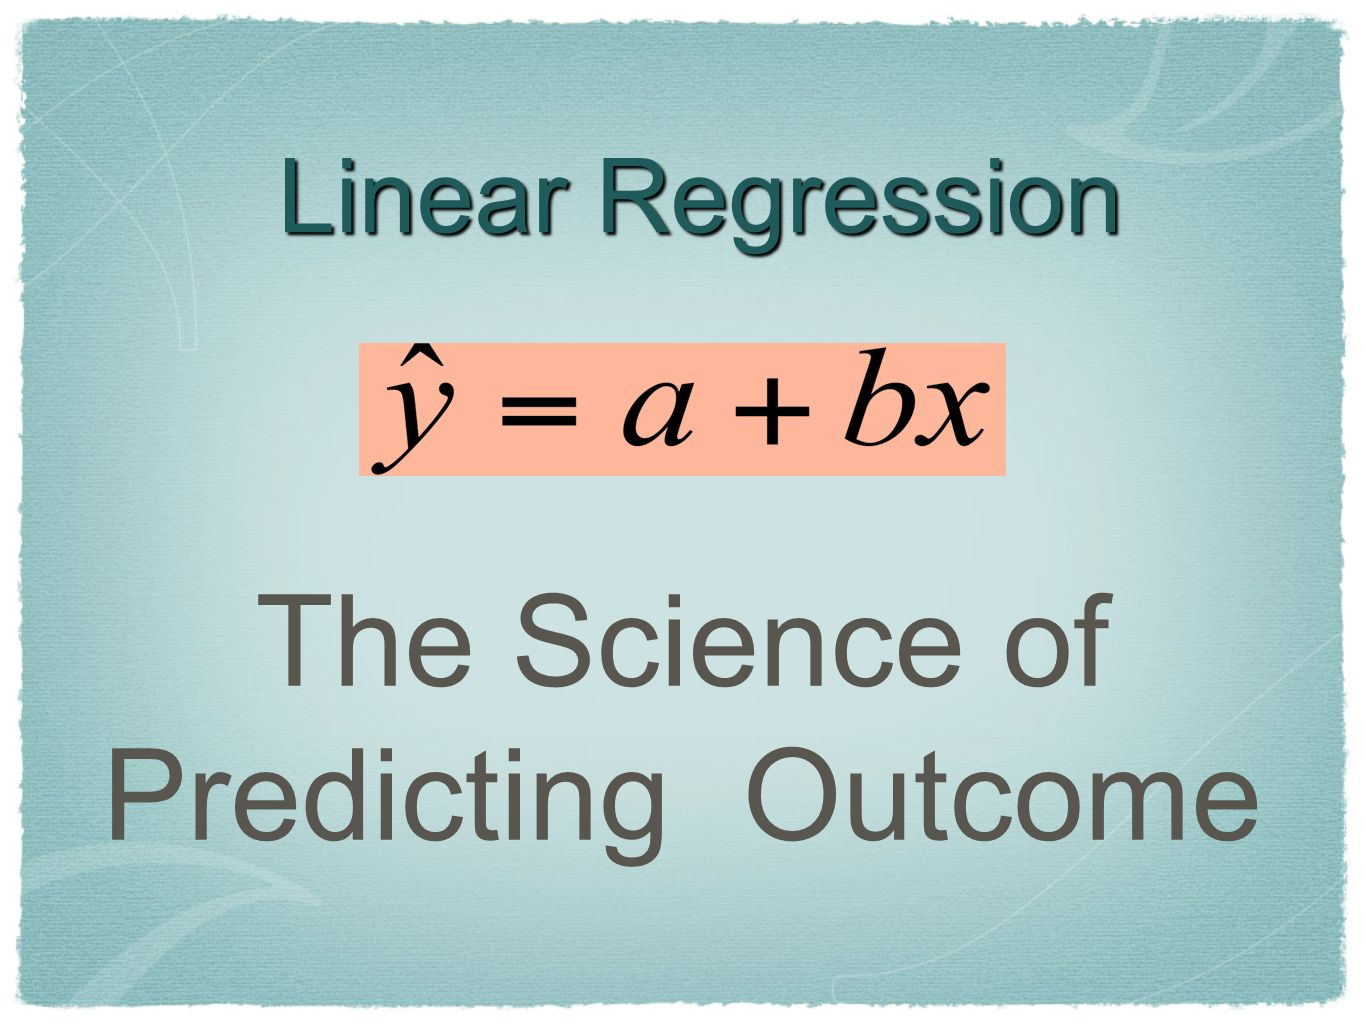 The Science of Predicting Outcome